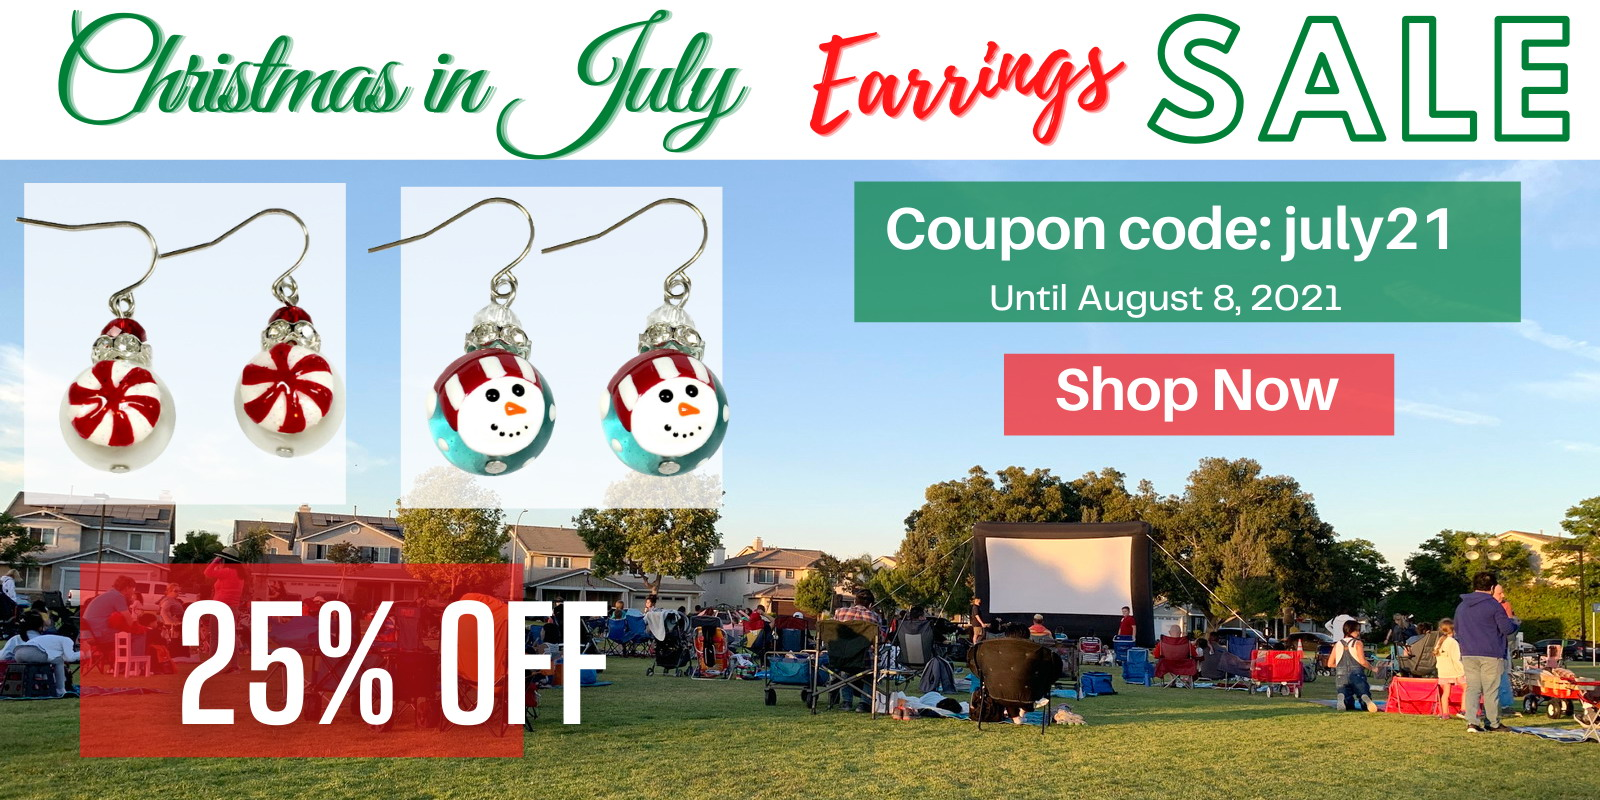 fiona Painted Christmas in July Earrings 25% OFF SALE